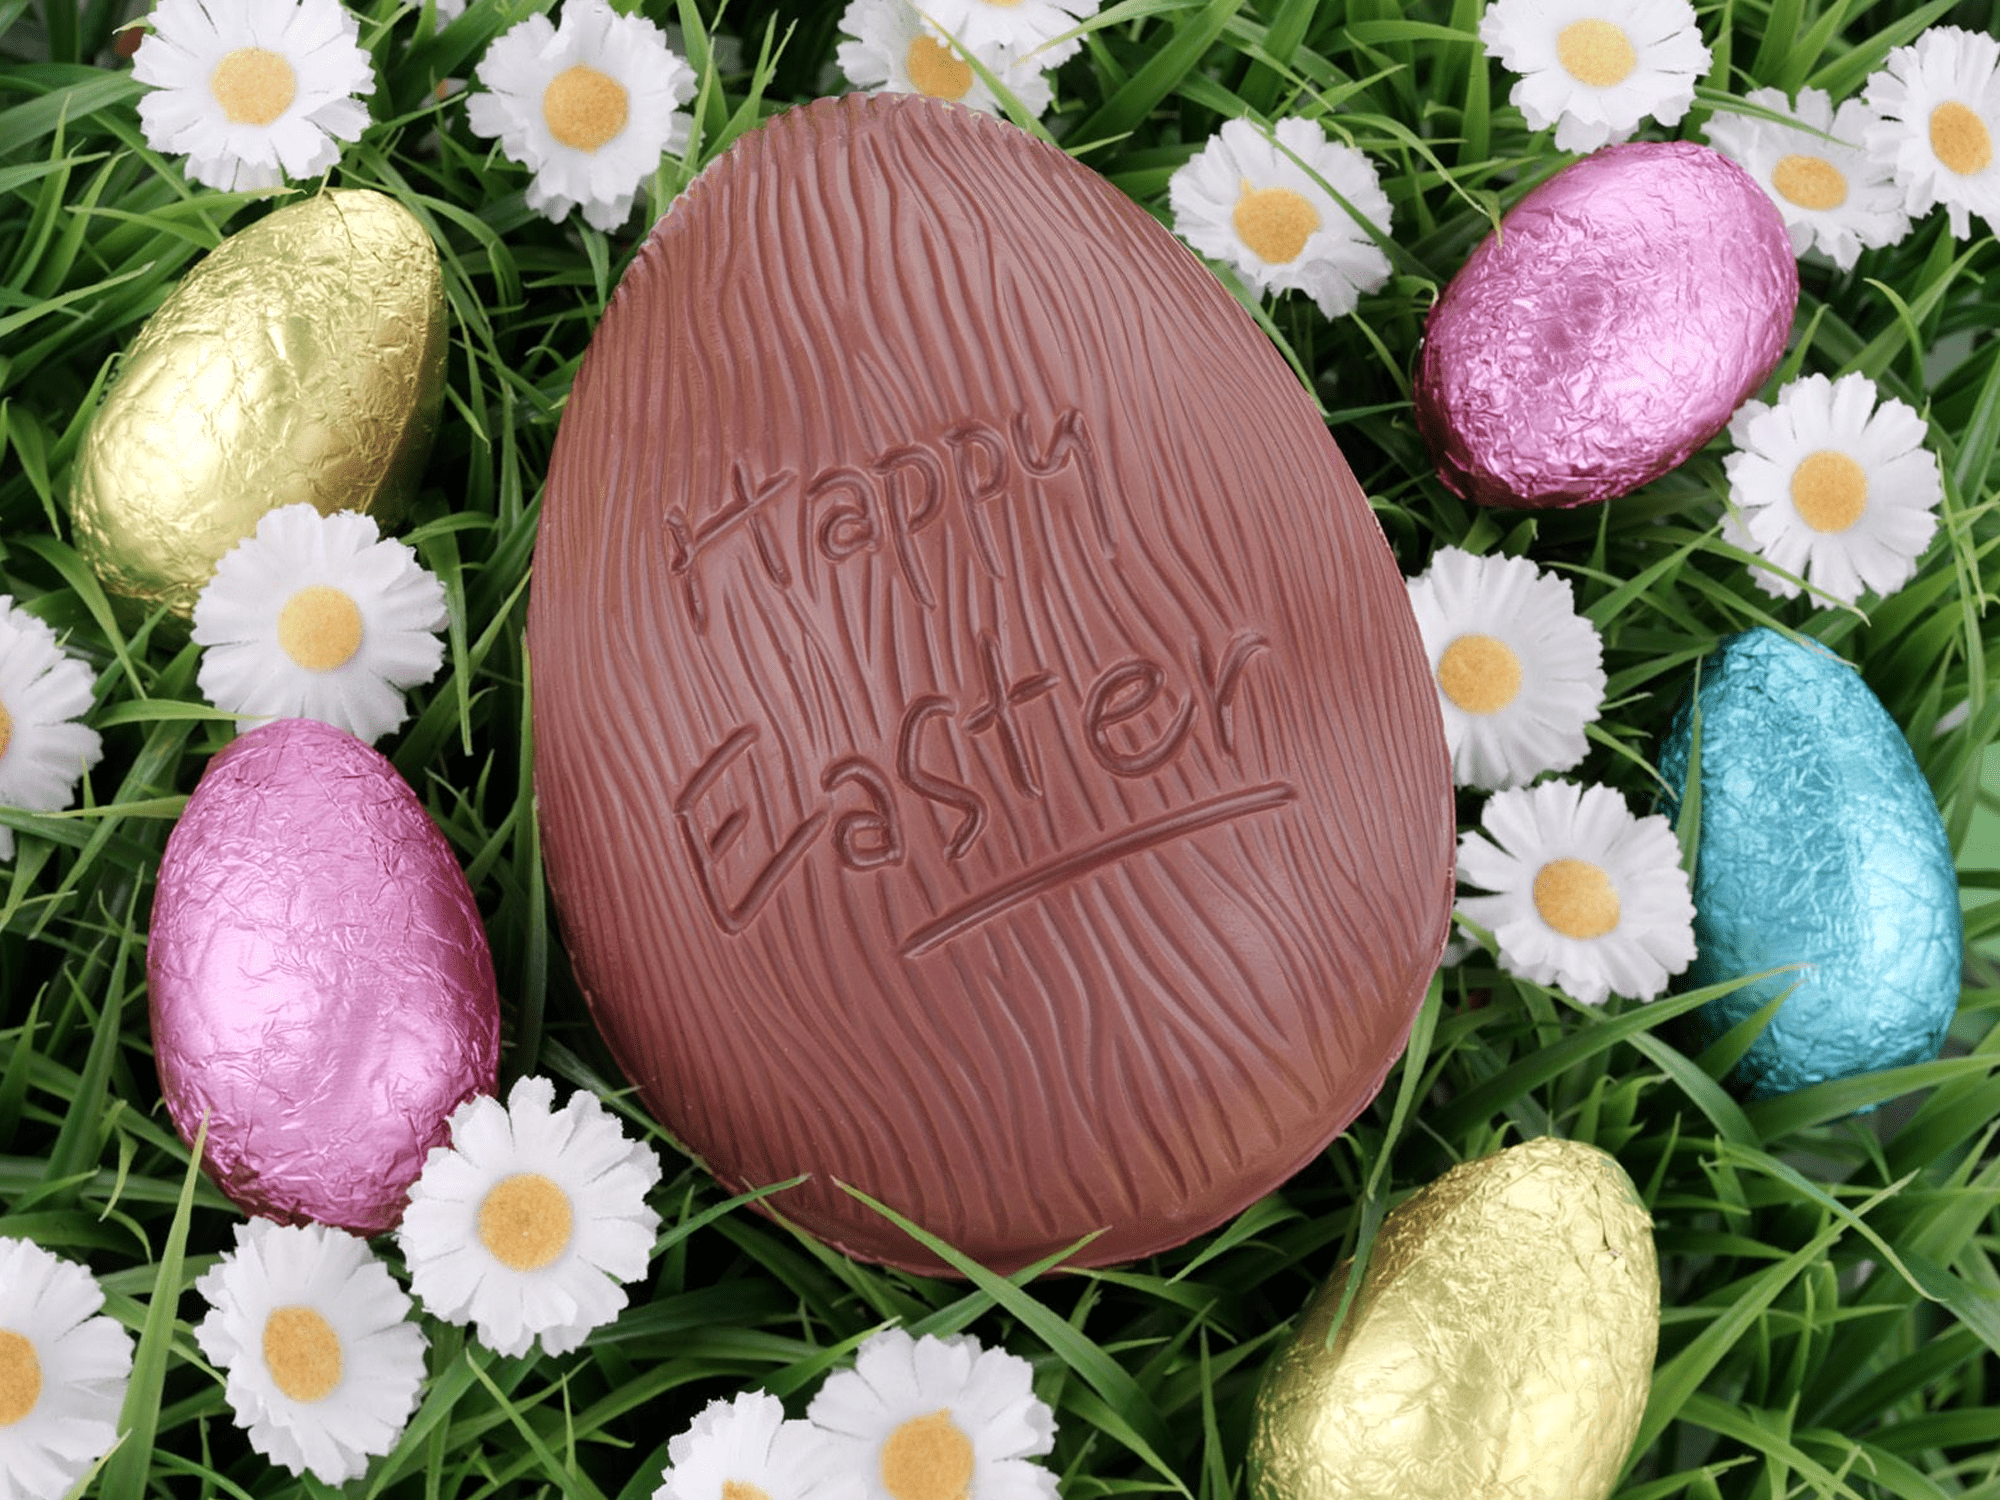 Free Easter wallpaper featuring a chocolate Easter egg surrounded by daisies and colorfully wrapped eggs